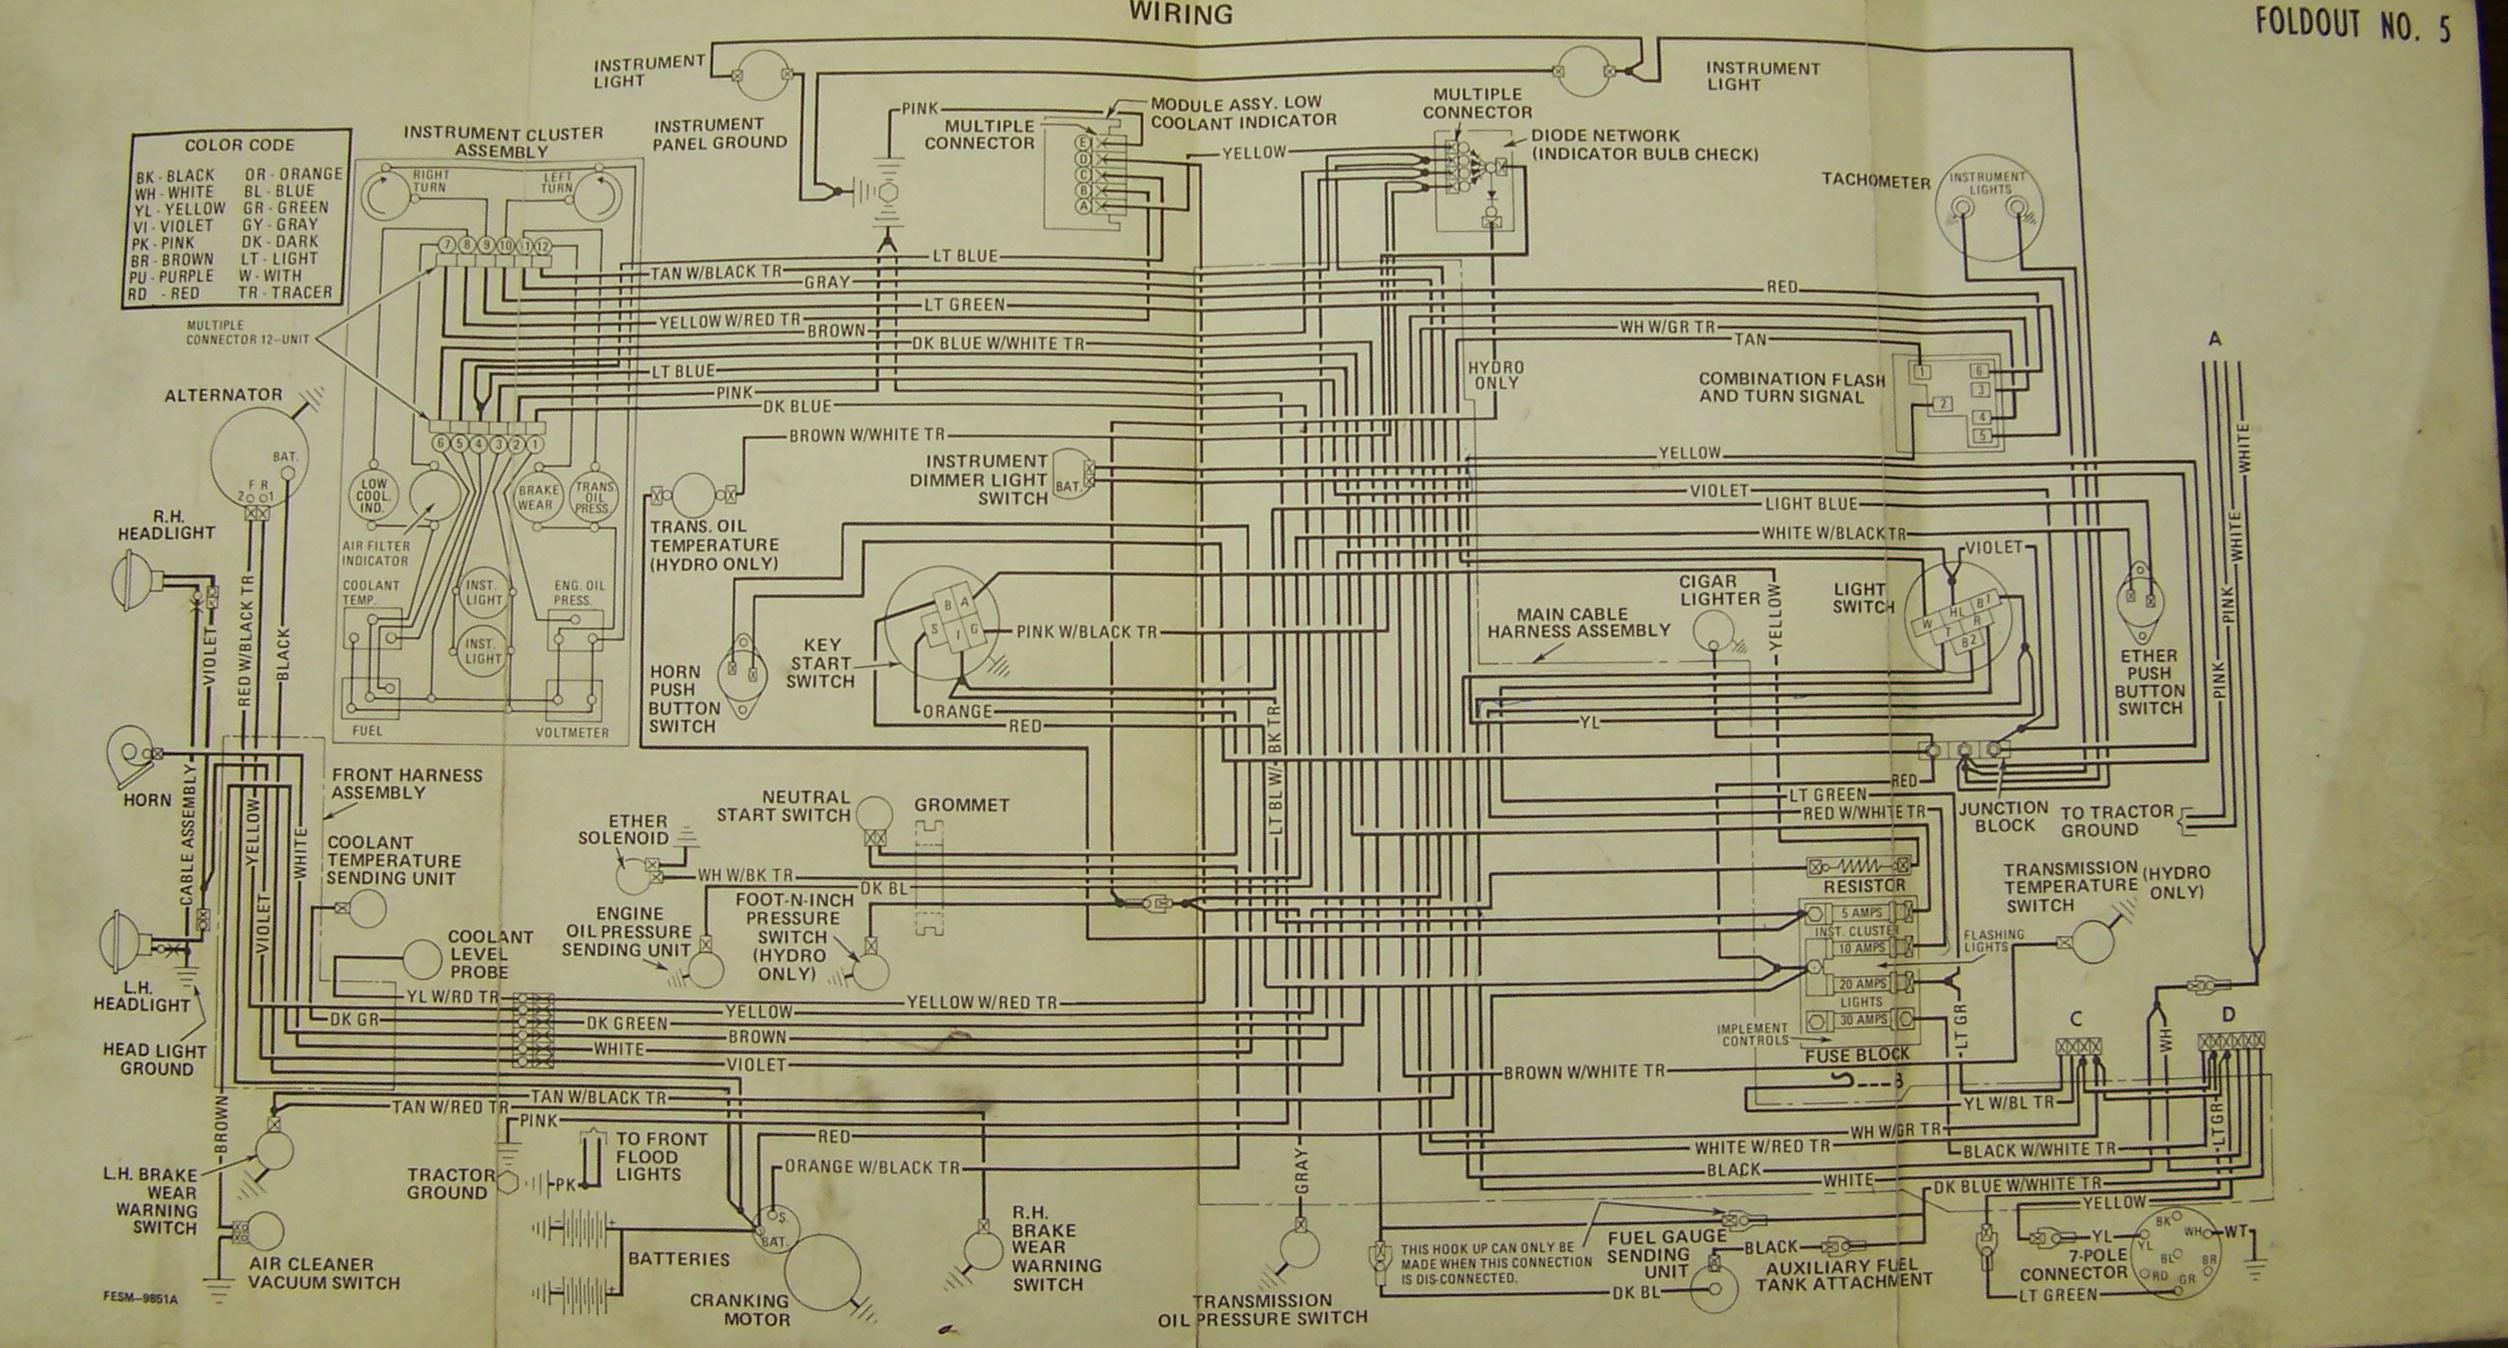 86series5 ih 574 wiring diagram case 430 tractor wiring diagram \u2022 wiring International 4300 Wiring Diagram Schematics at aneh.co